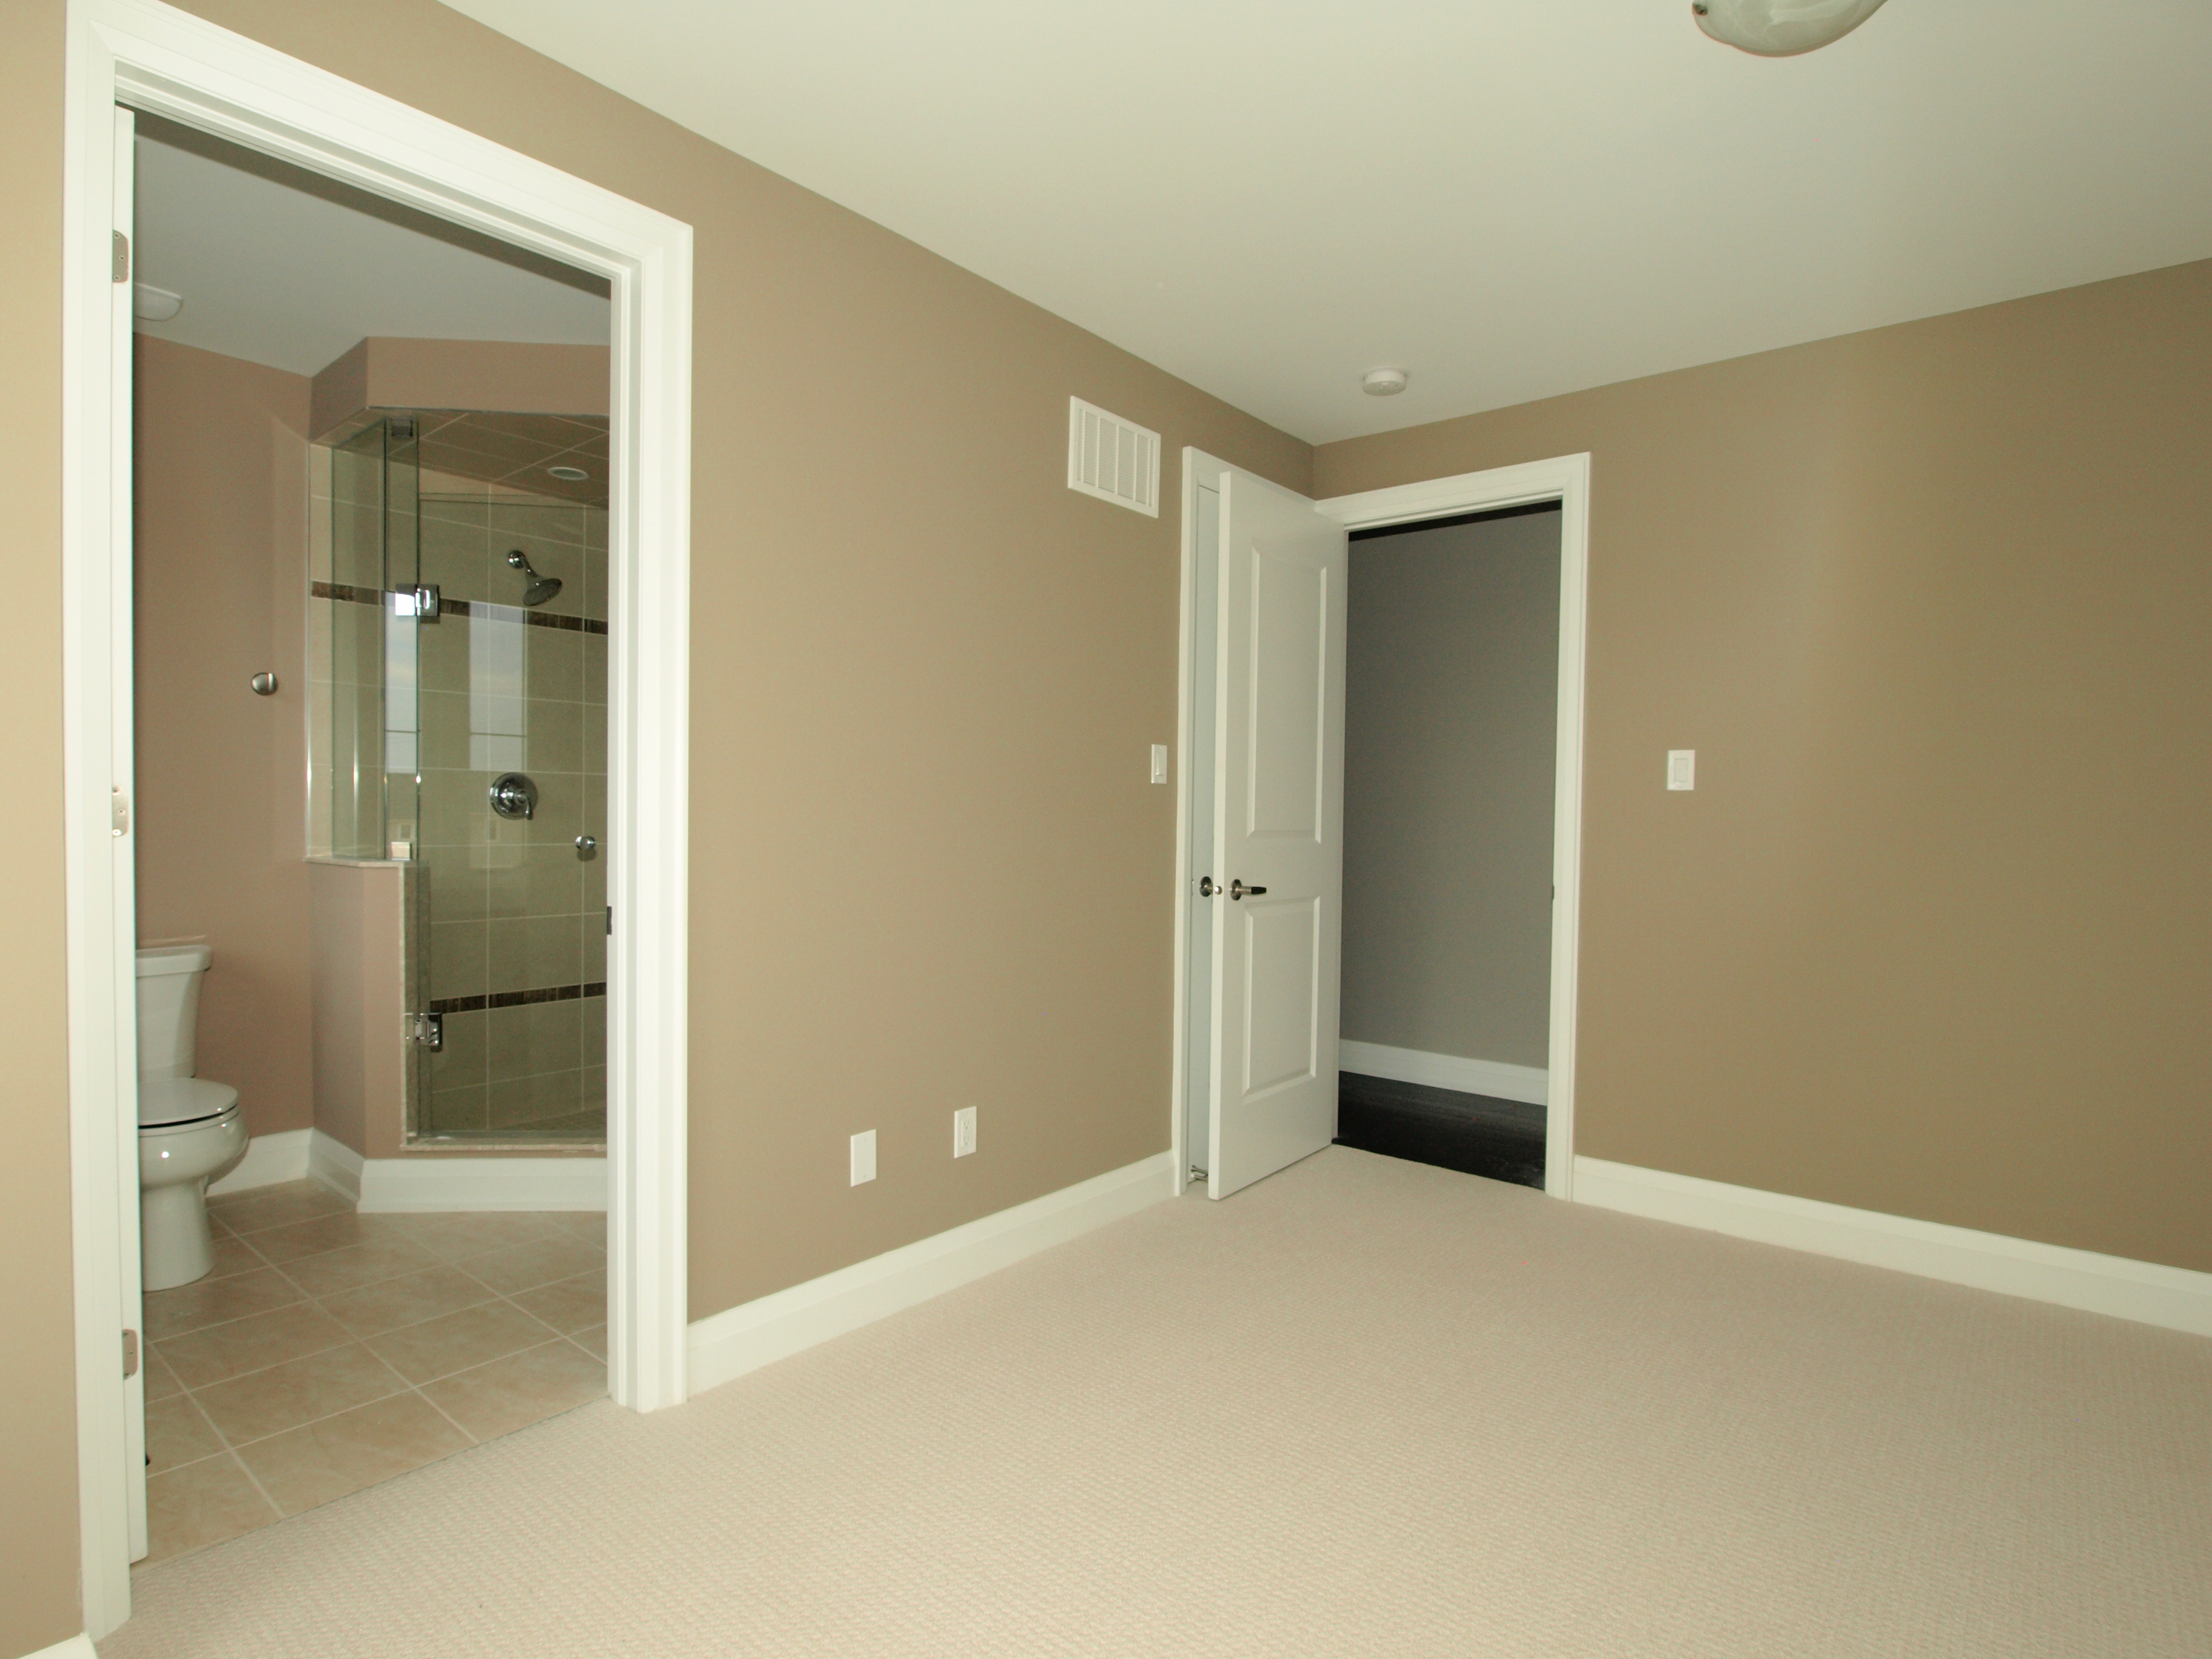 2011 Deerview Common, Oakville, ON, Canada in Oakville, ON is Now Available